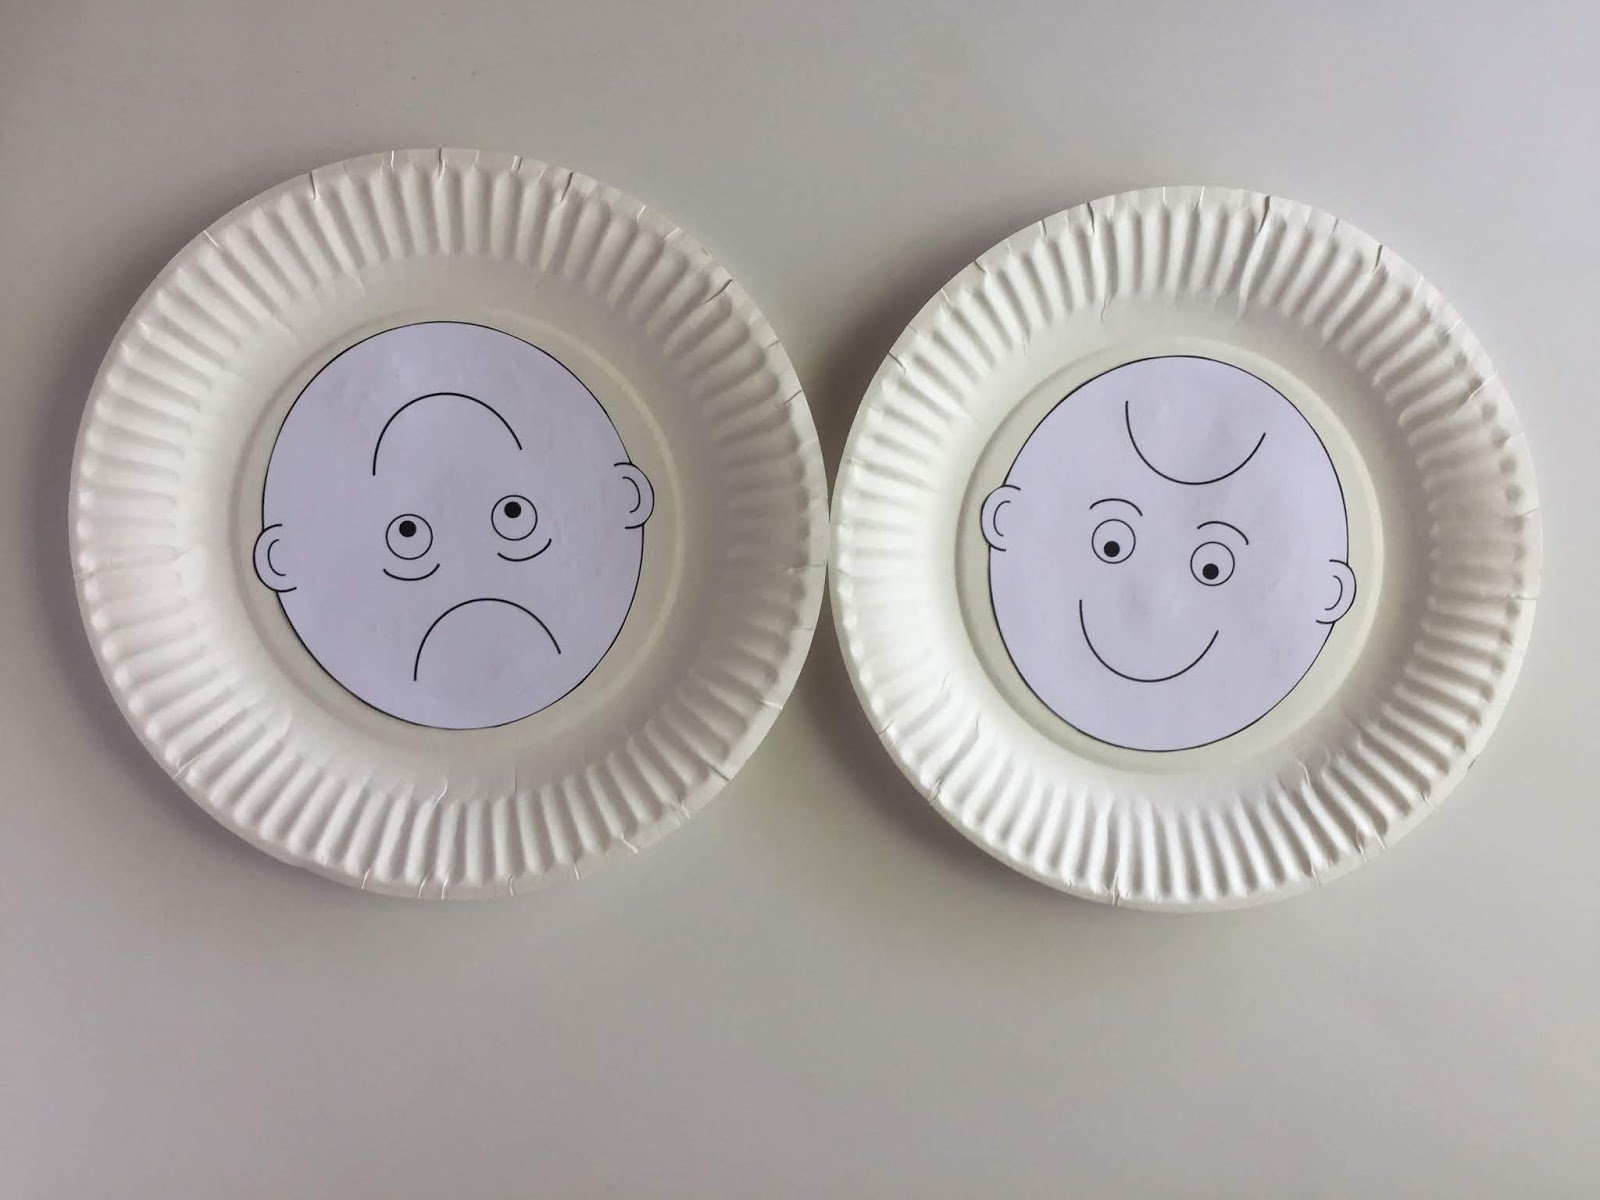 Camille's Primary Ideas: Smiles using paper plate smile and frowny faces